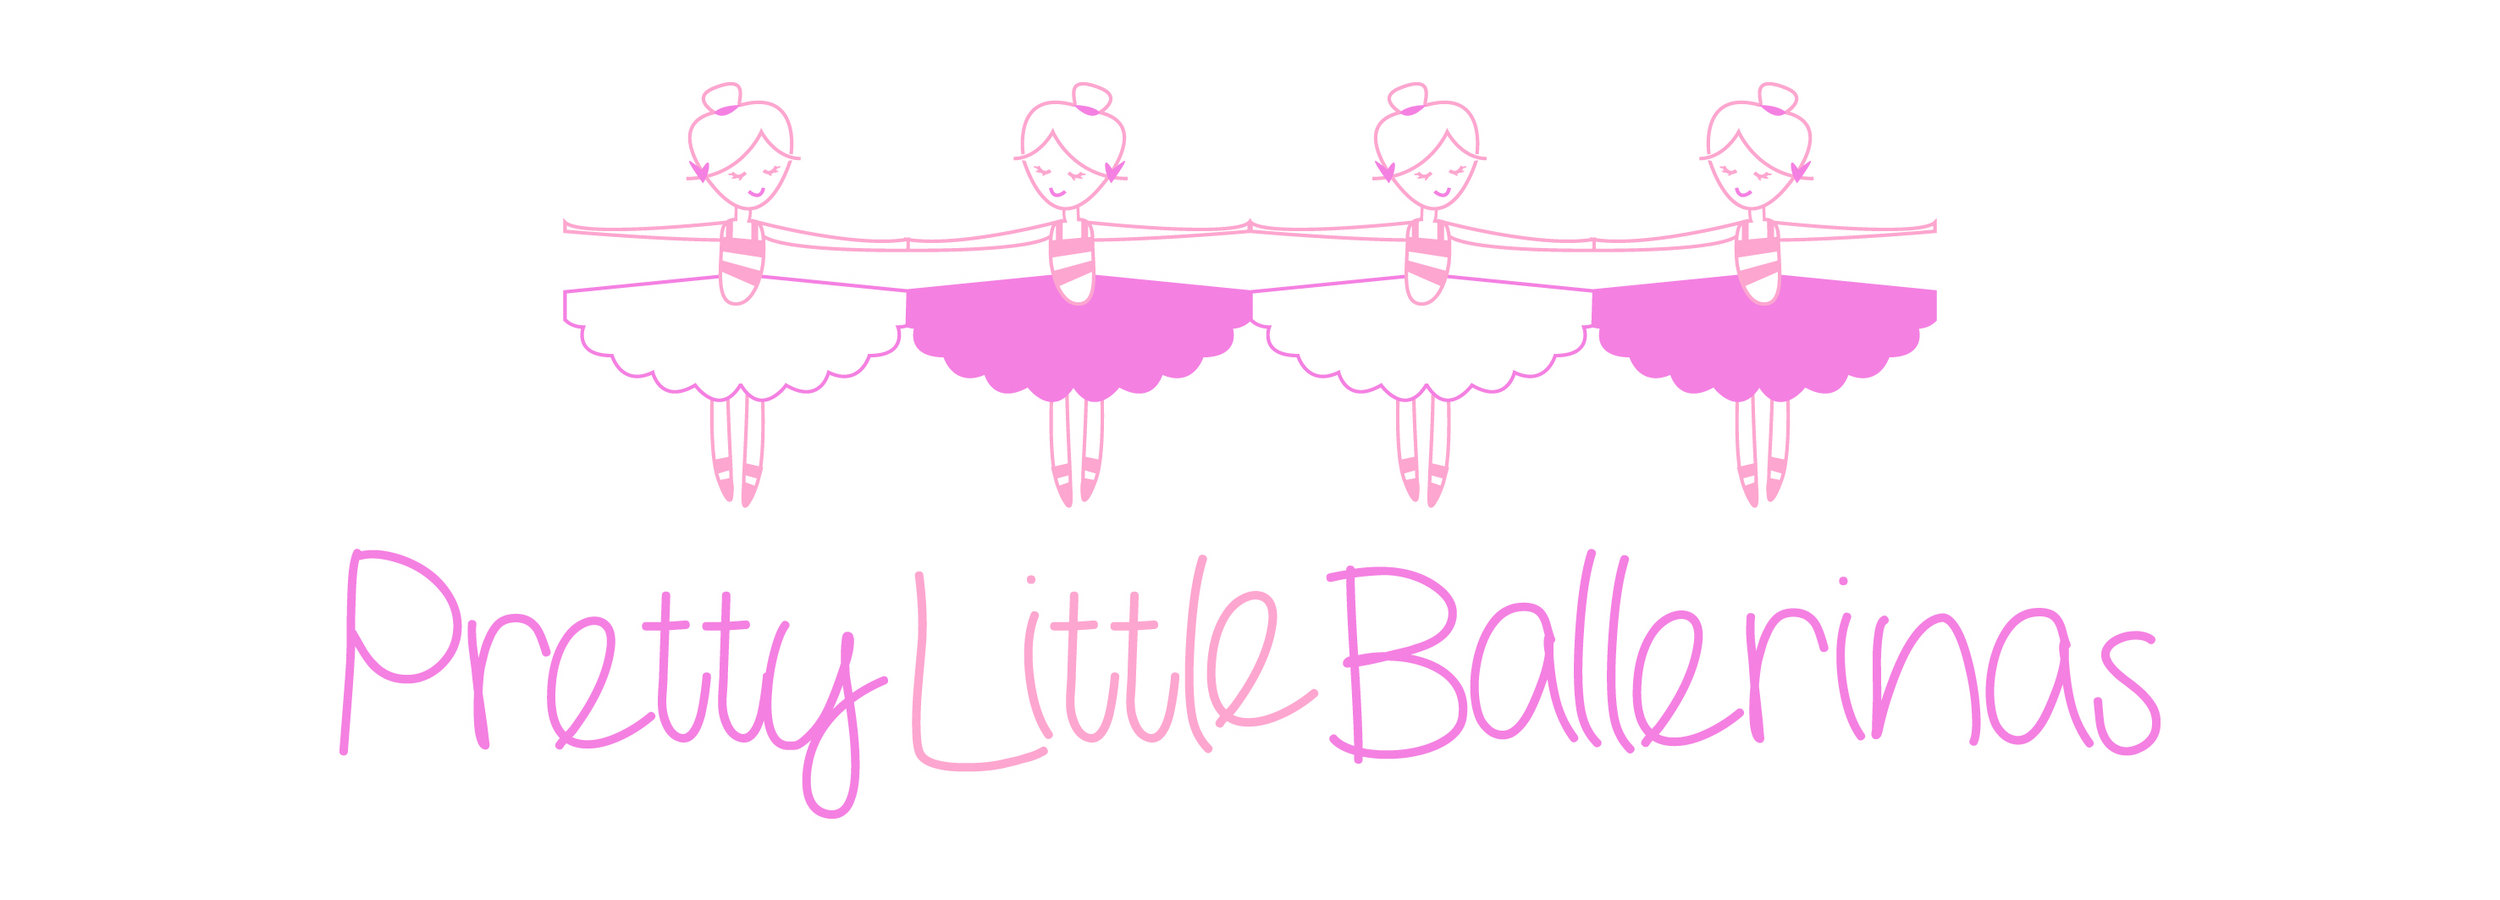 Does your child love to dance? Come and discover the magic at Pretty Little Ballerinas. Pretty Little Ballerinas offers delightful ballet and jazz classes for girls and boys from 2 years old through to 10 years old.